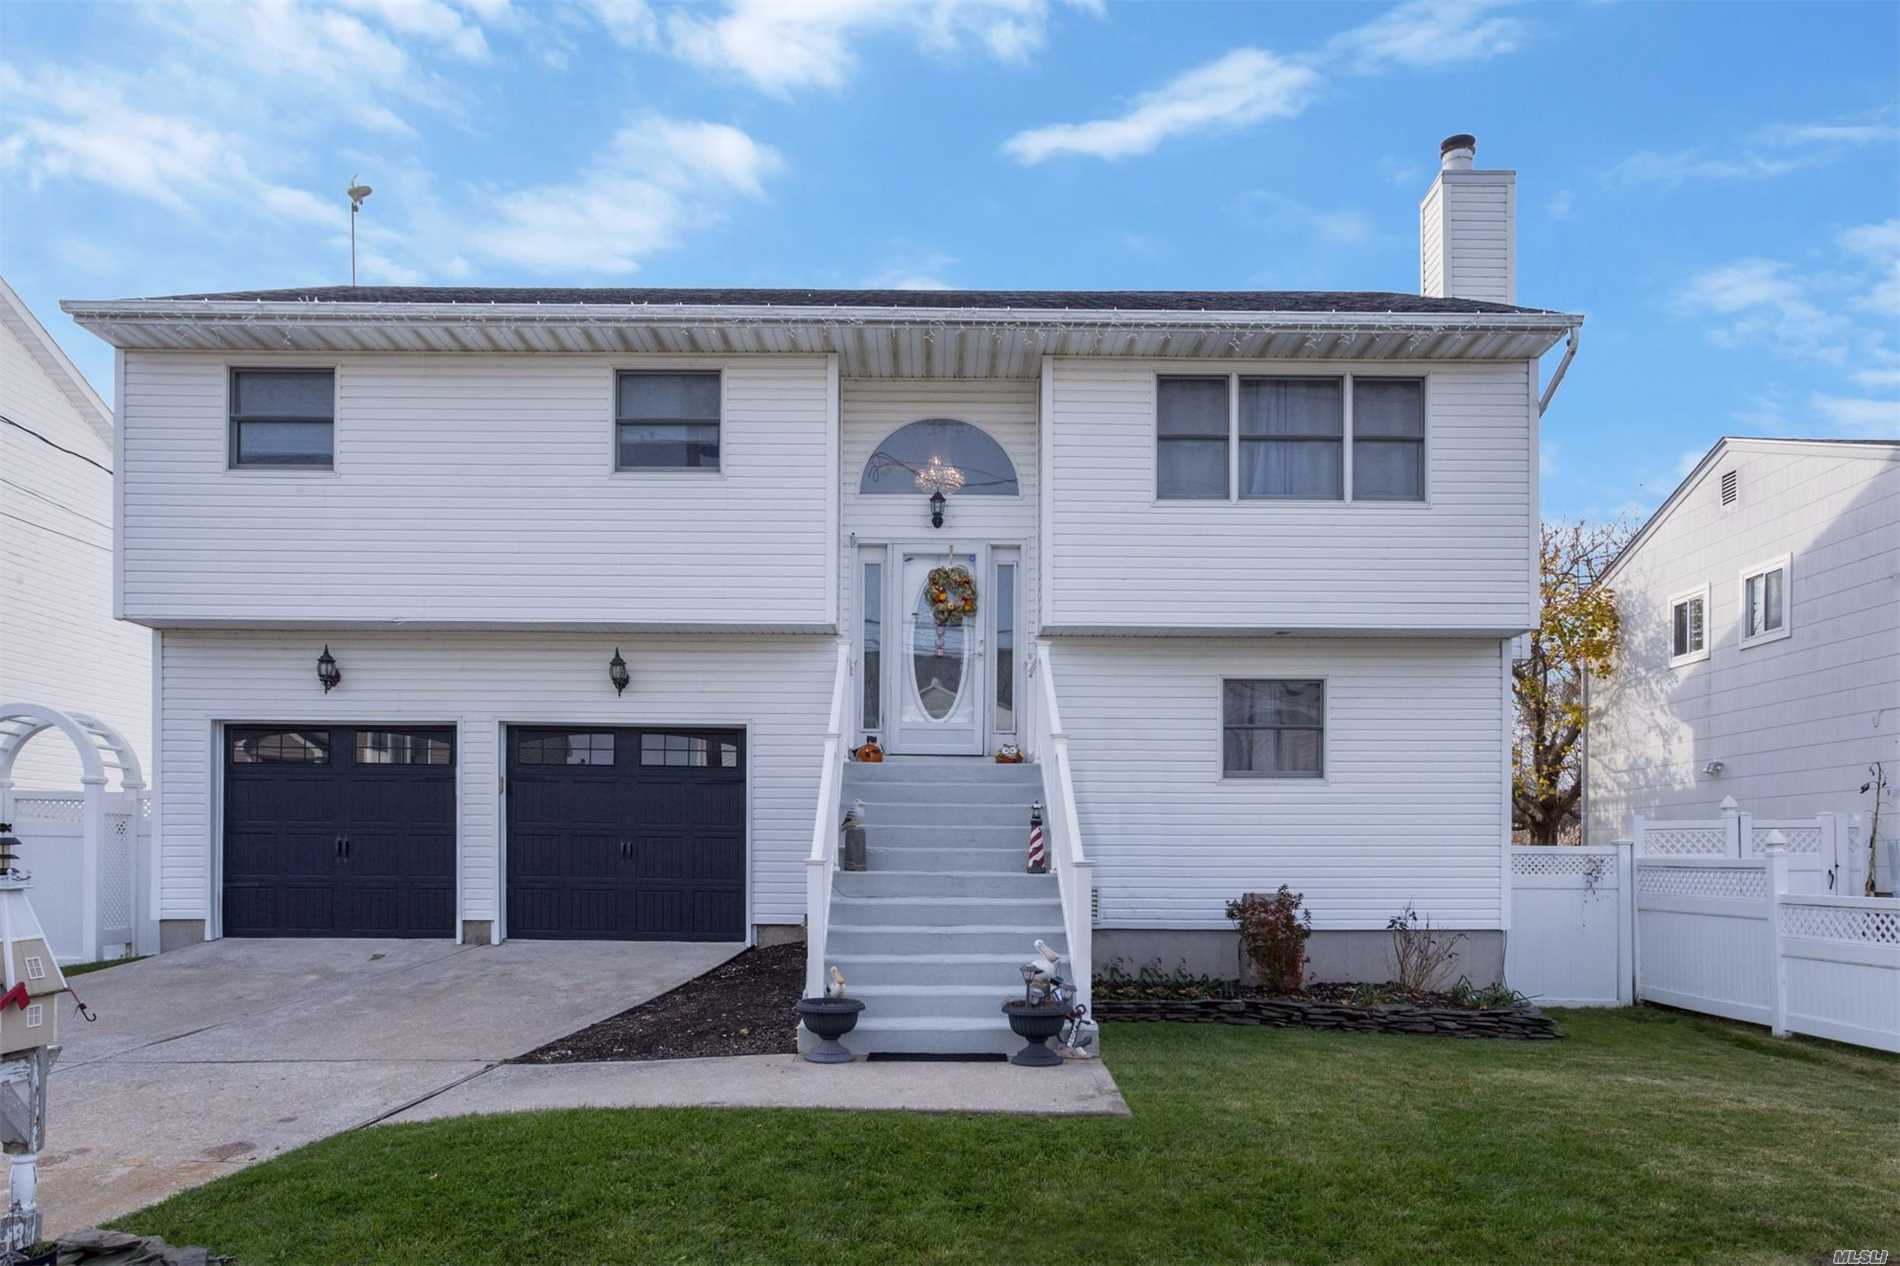 Built In 1997, This Beautiful Waterfront Home Features A Floating Dock And 3 Boat Slips. New Master Bath, New Cac, New Hardwood Floors, New Garage Doors, New Dishwasher, Ceiling Fans, Hi-Hats, Full Crawl Space Under Laundry Room - Alarm System, Living Room W/Fireplace, Spacious Eik, Fdr W/Sliders To Upper Deck And A Great Fenced In Yard Complete This Home....